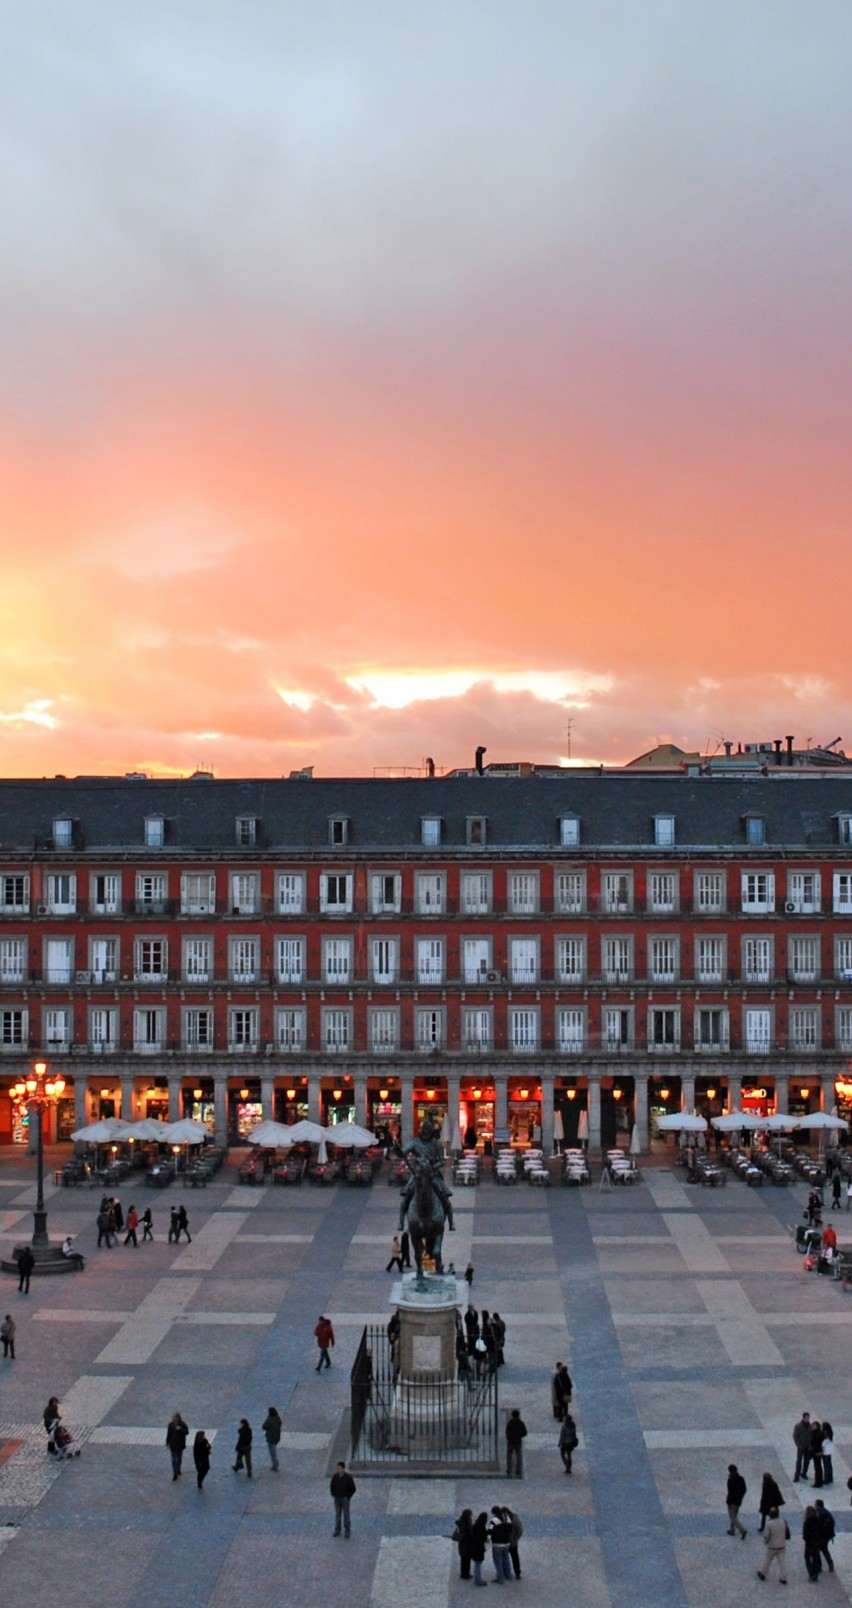 Plaza Mayor, Madrid, Spain Wallpaper for Apple iPhone 6 / 6s